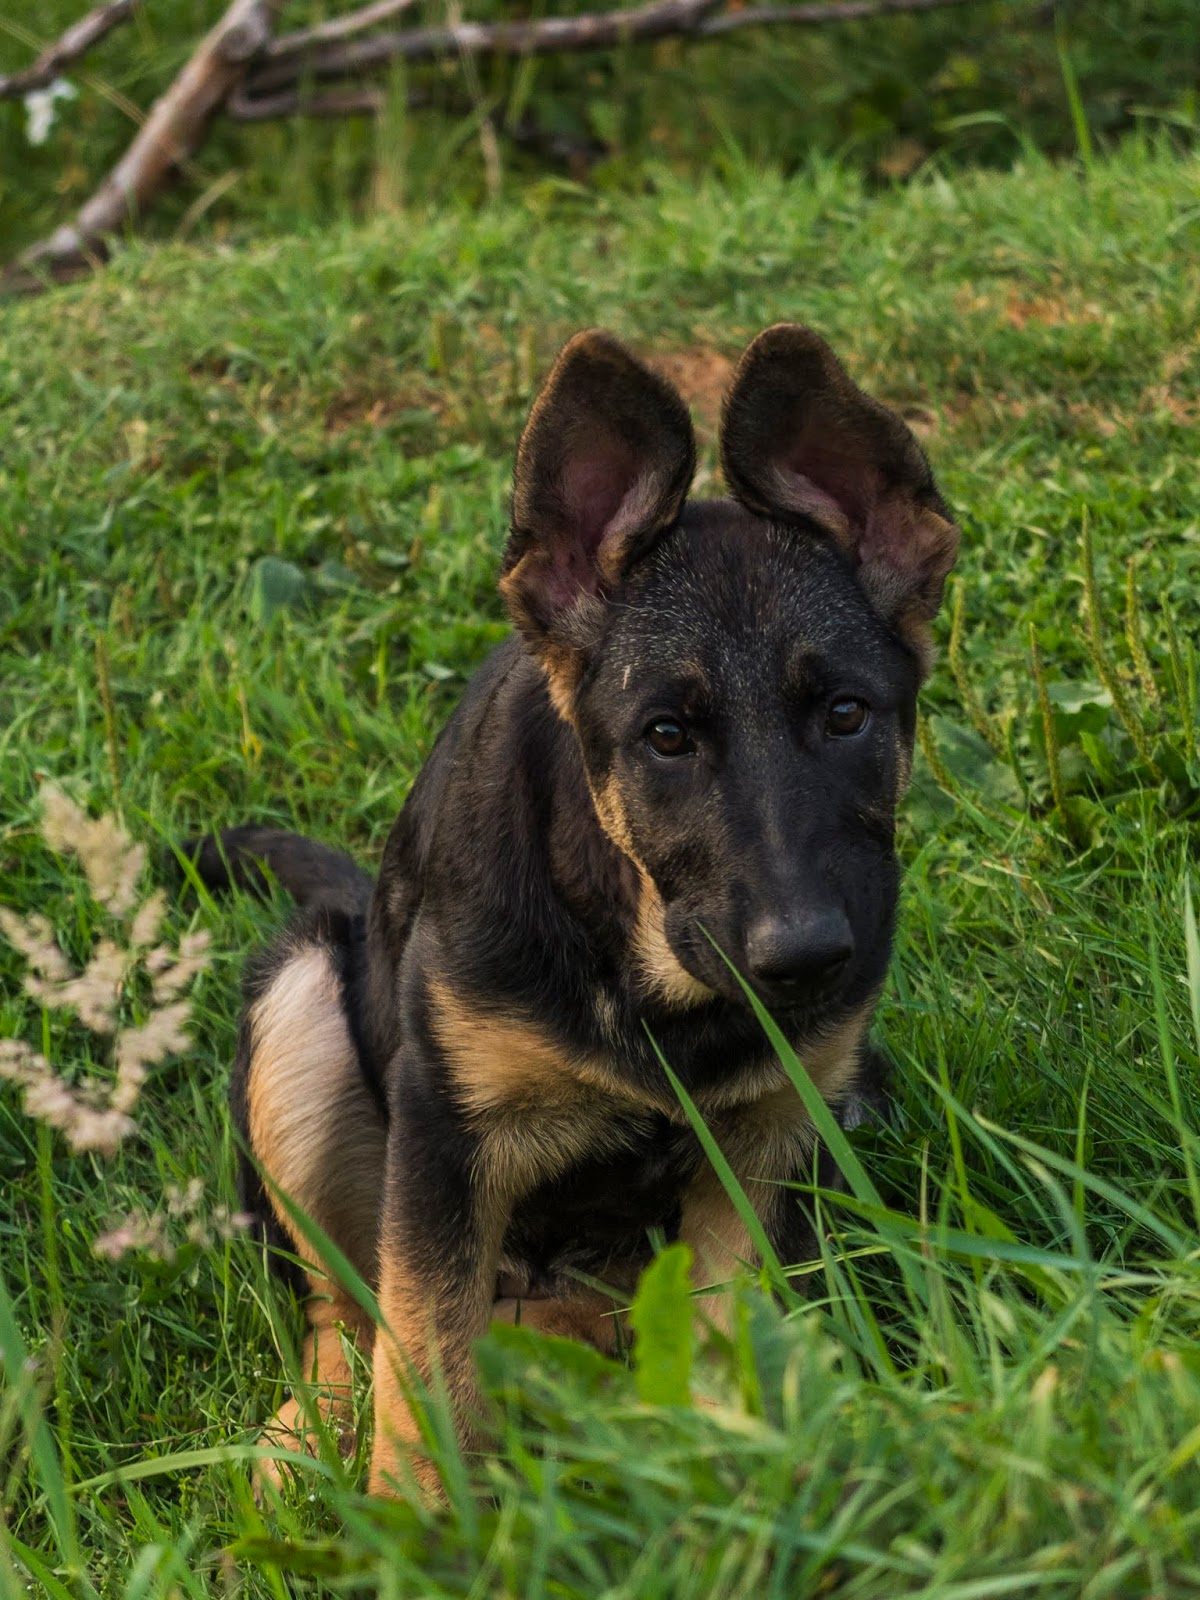 A 3 month old German Shepherd puppy with her ears up sitting on grass.